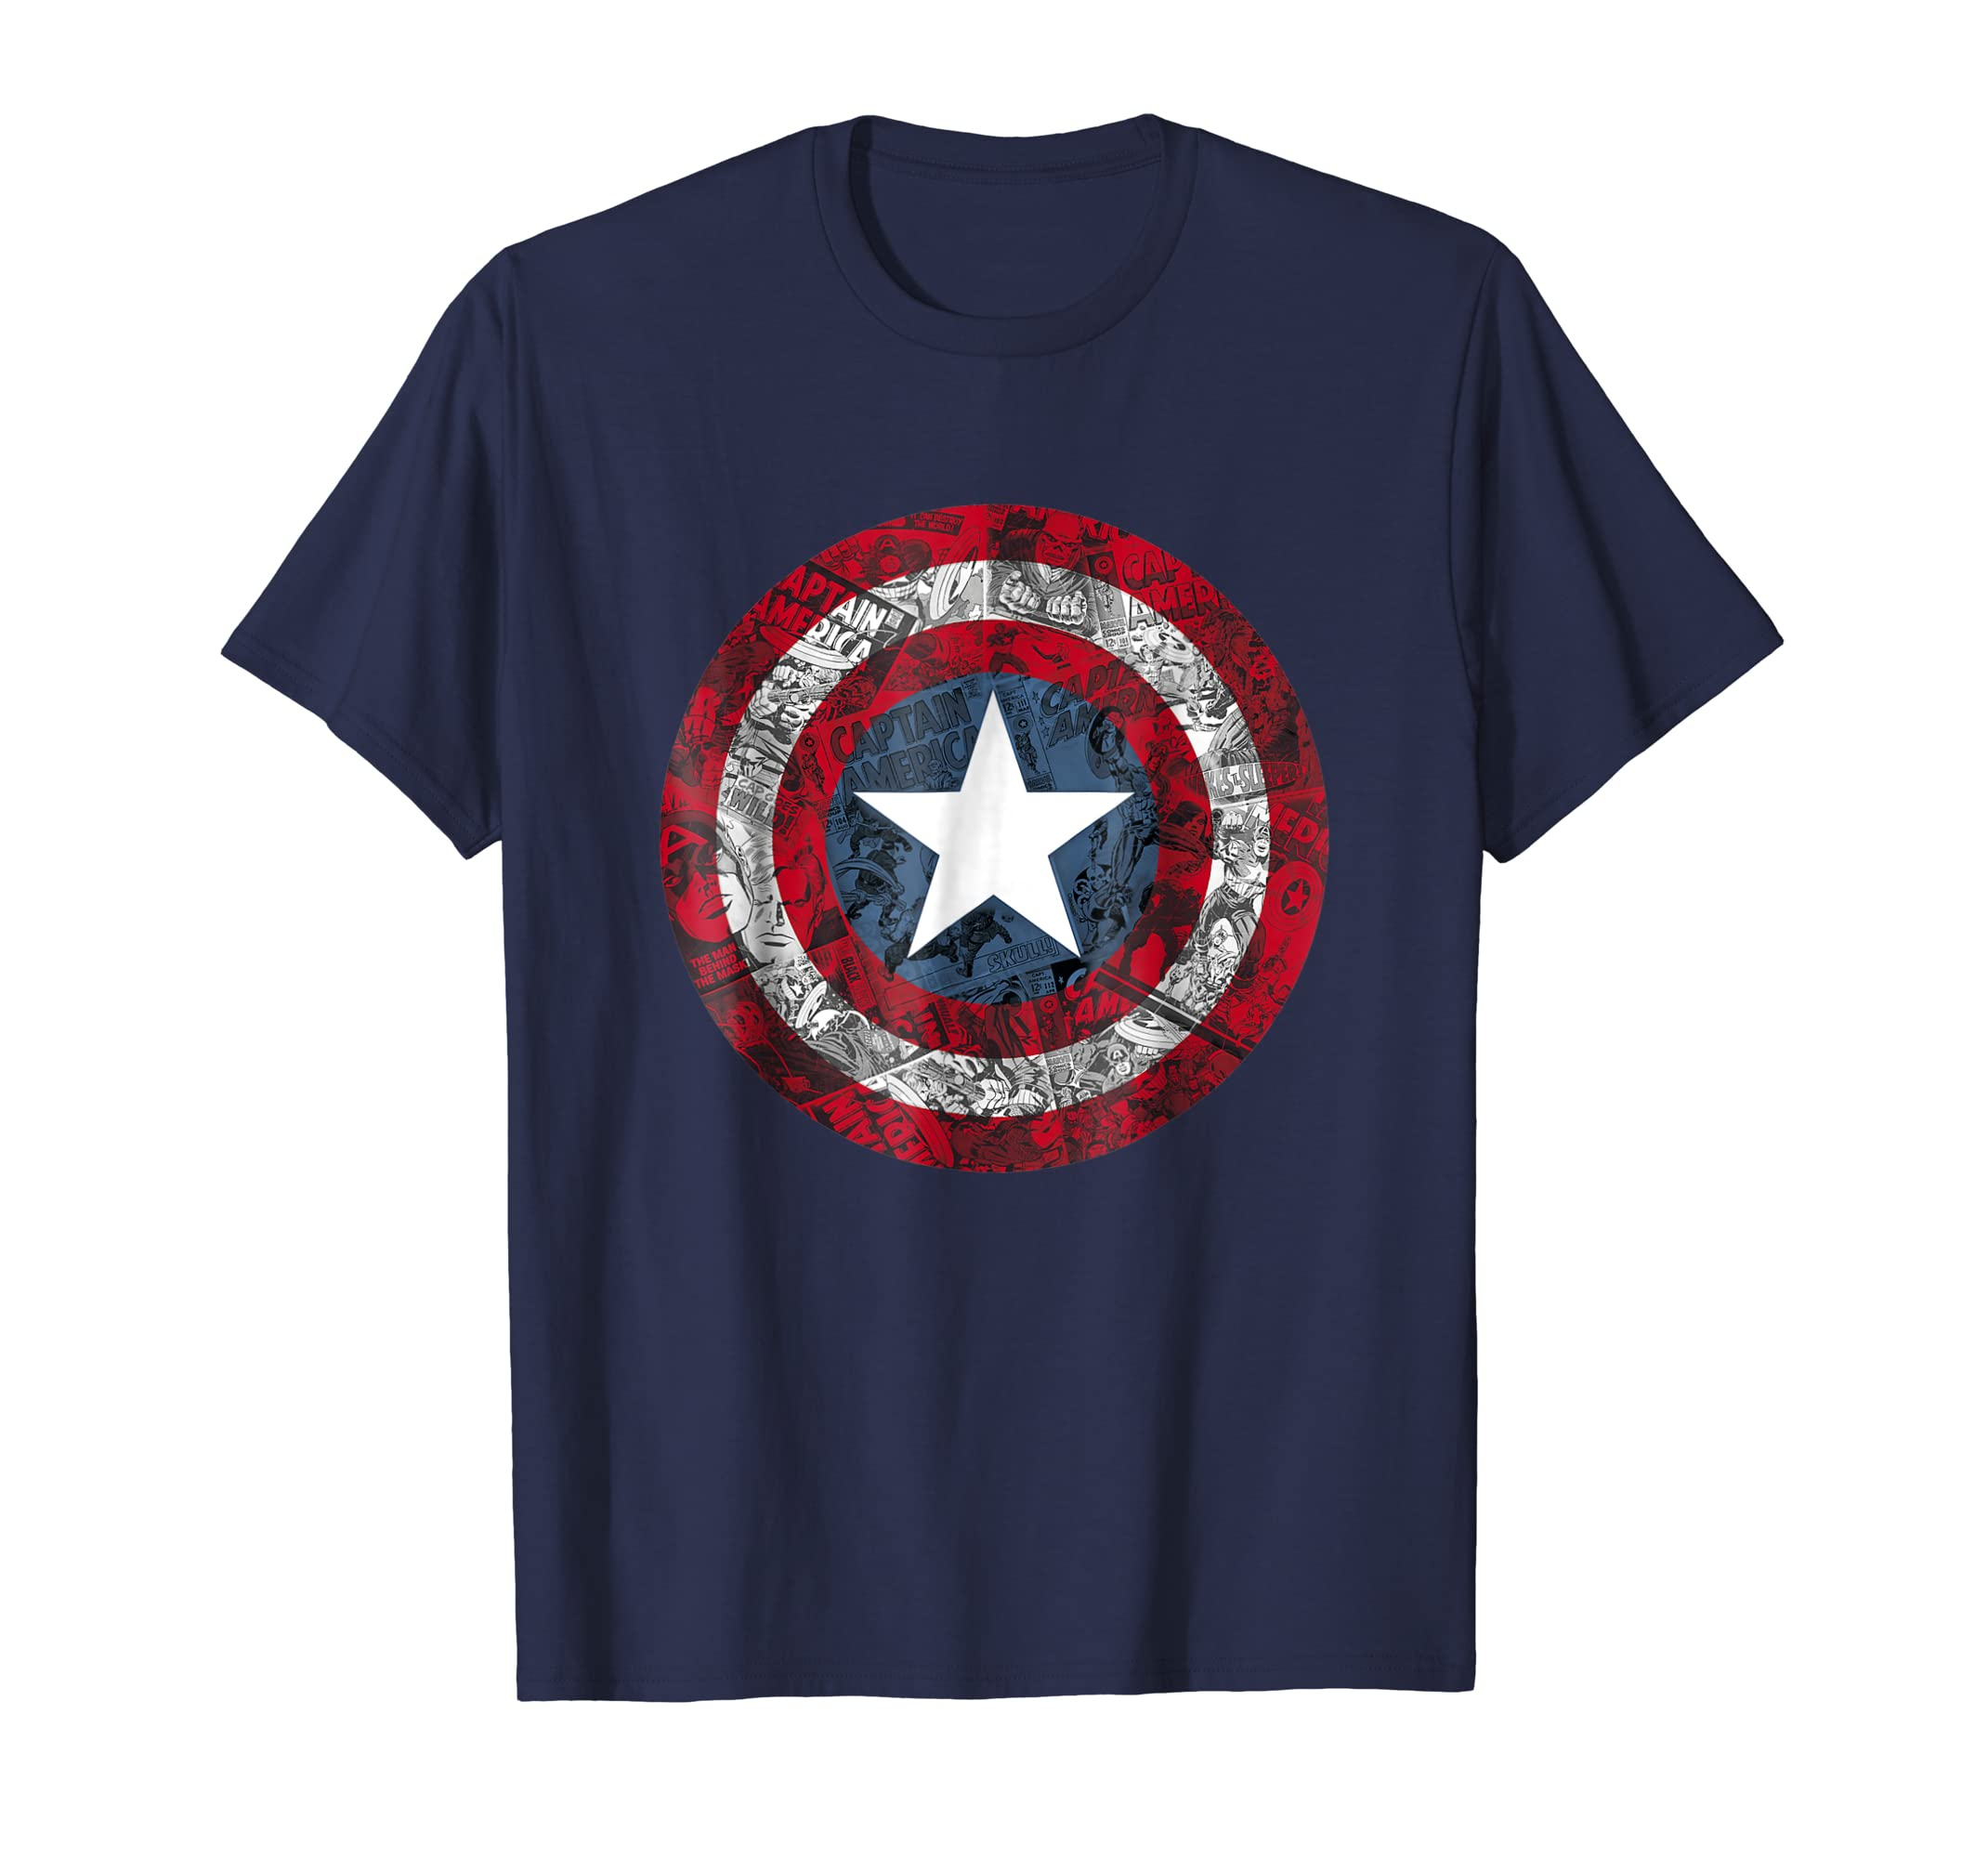 Captain America Avengers Shield Comic Graphic T Shirt-azvn